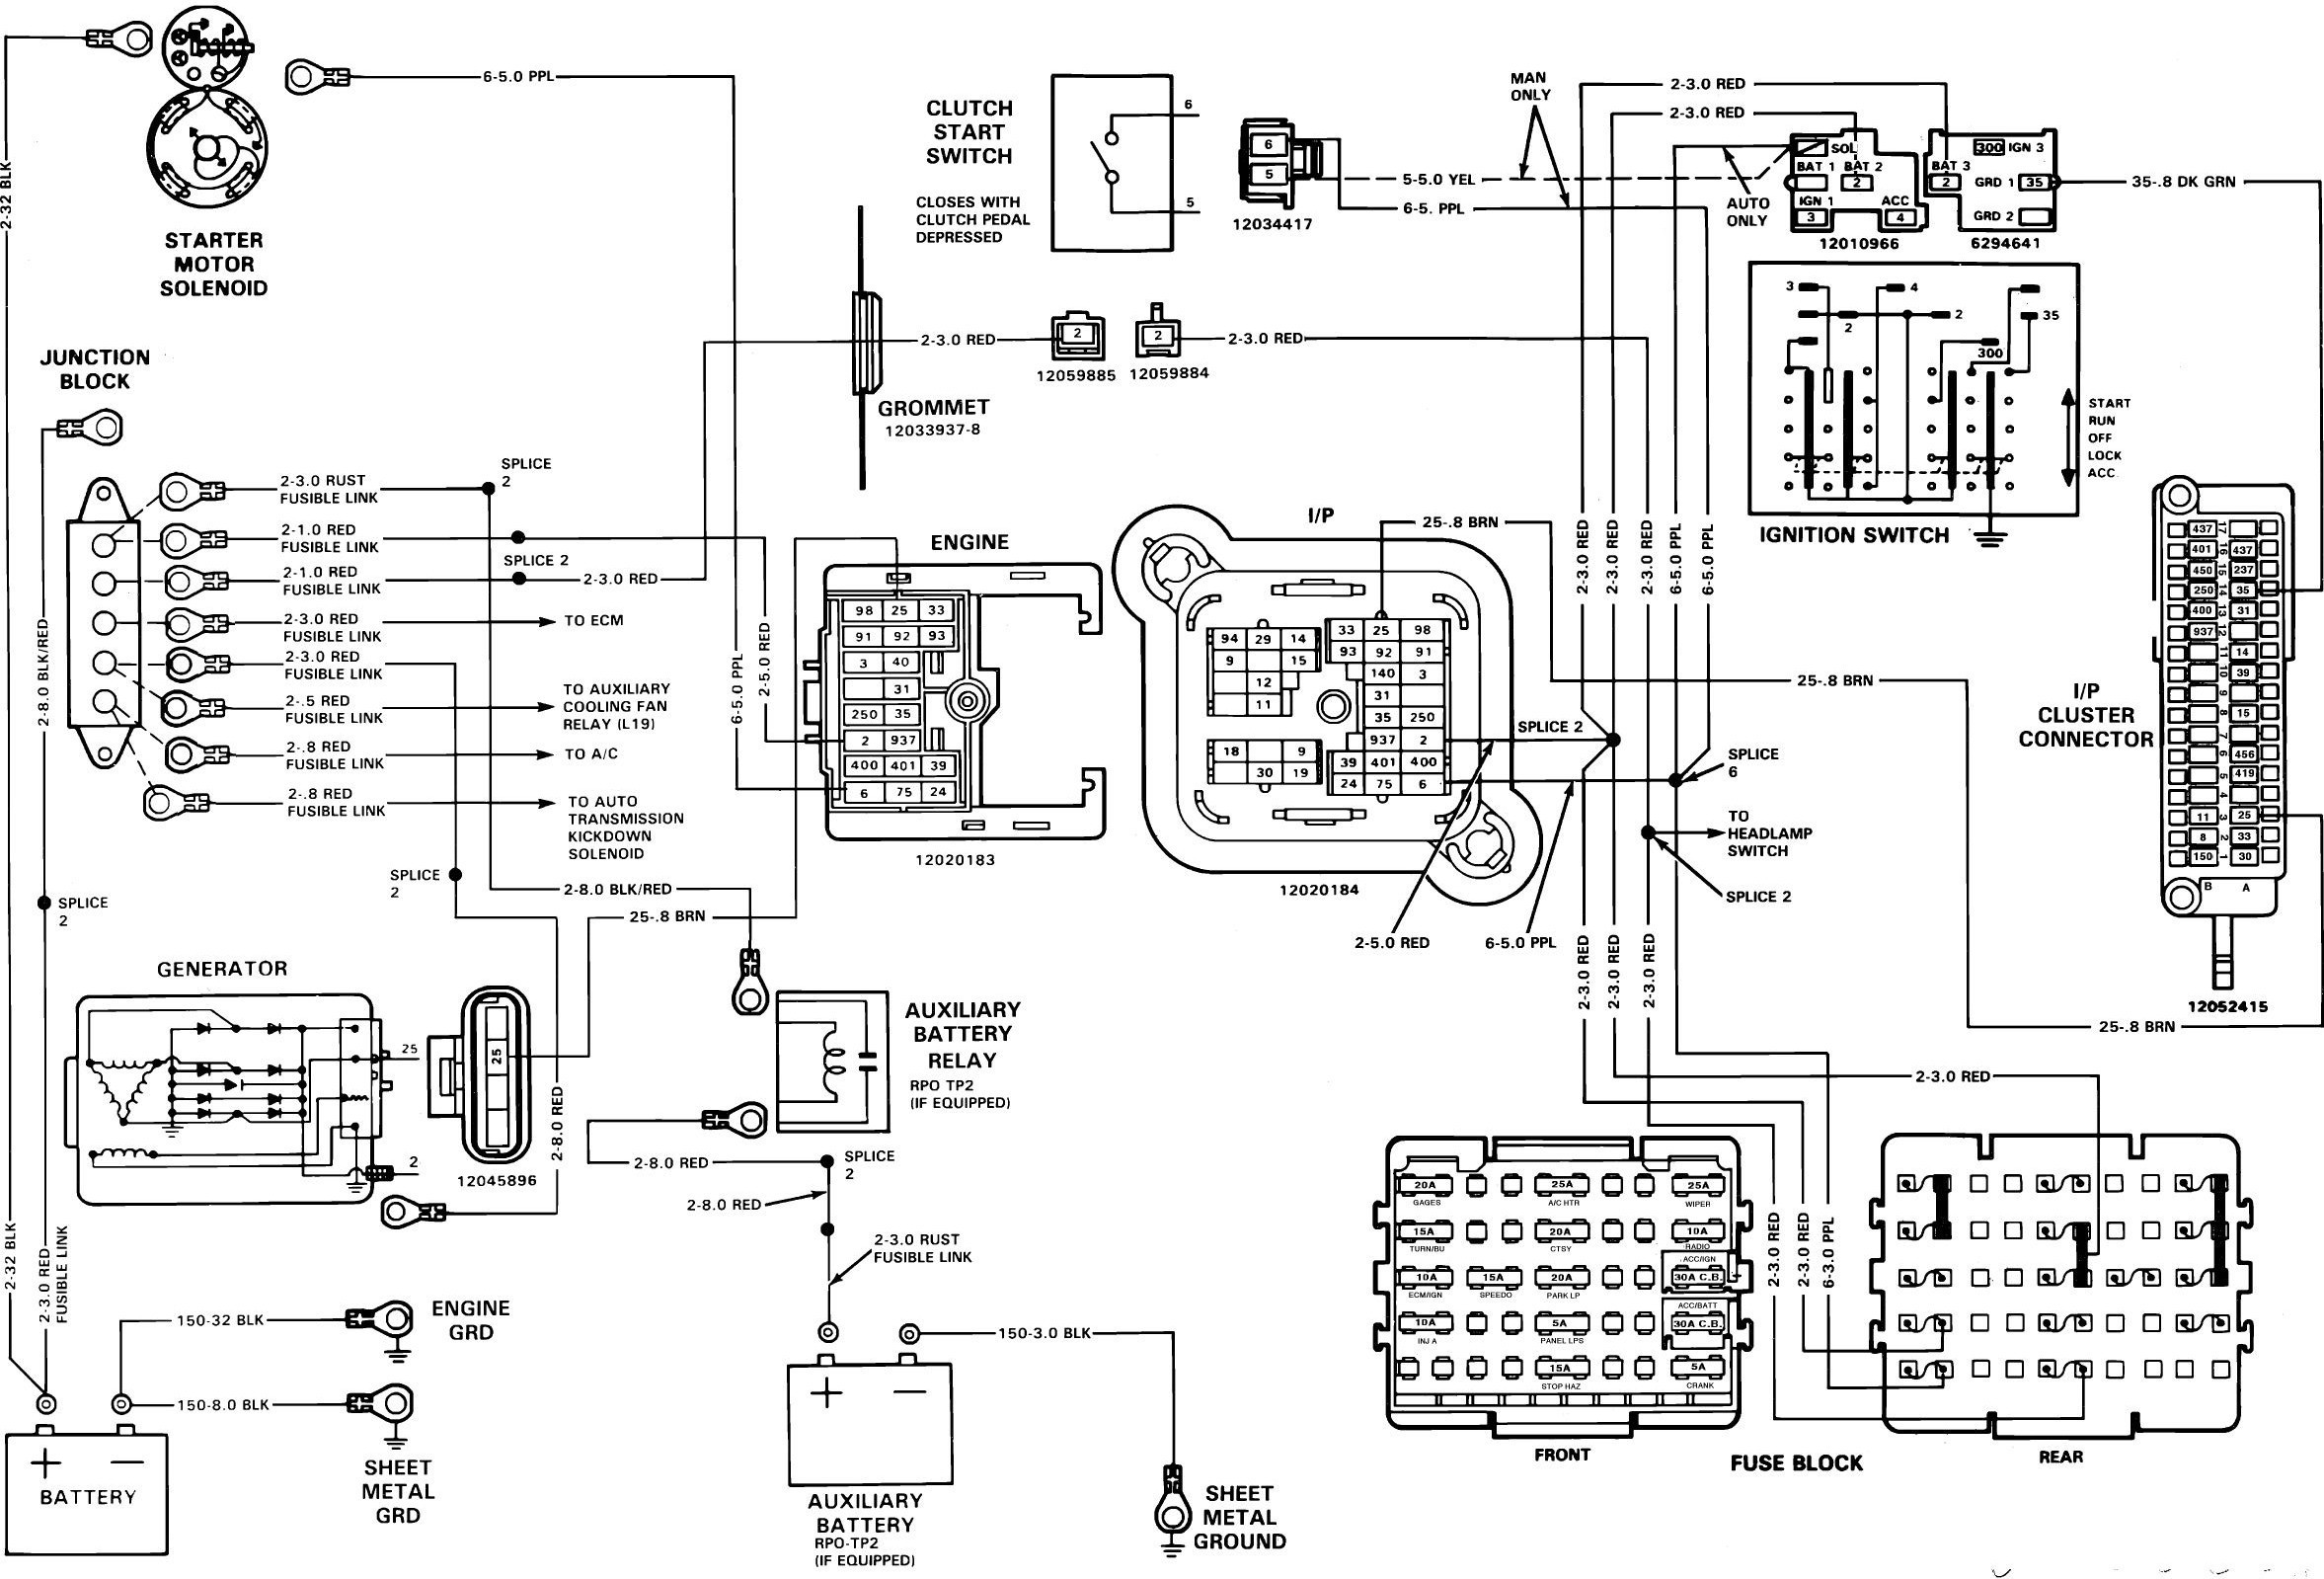 1988 Toyota 3 0 Engine Diagram Great Installation Of Wiring 1989 V6 Library Rh 81 Skriptoase De 30 Parts